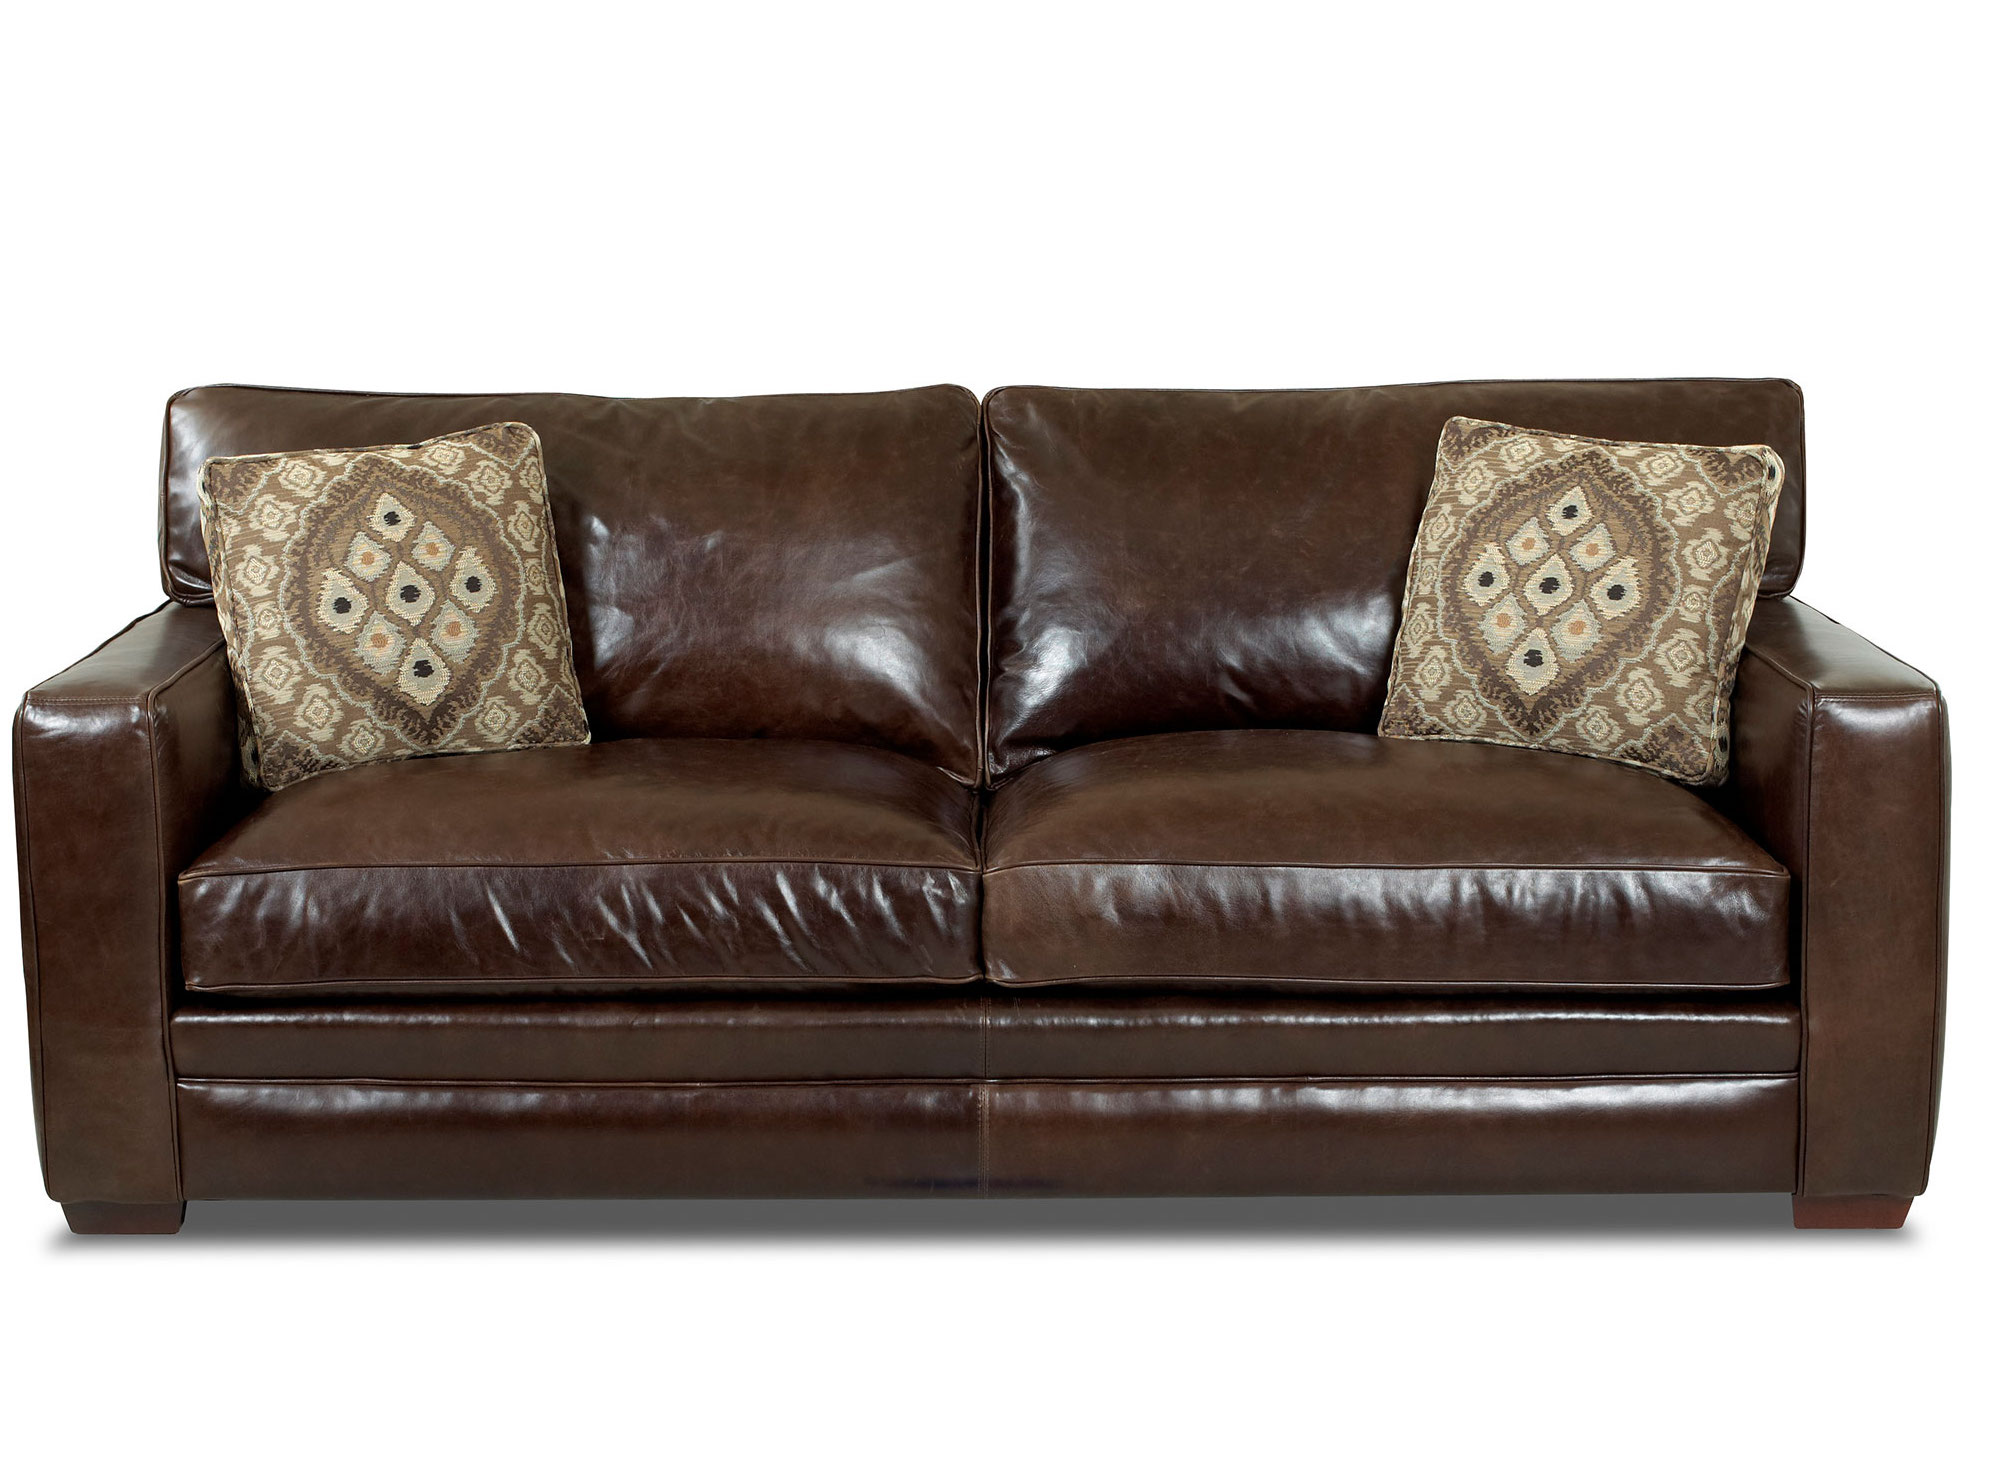 Chicago 92 Leather Queen Sofa Sleeper Sofas And Sectionals